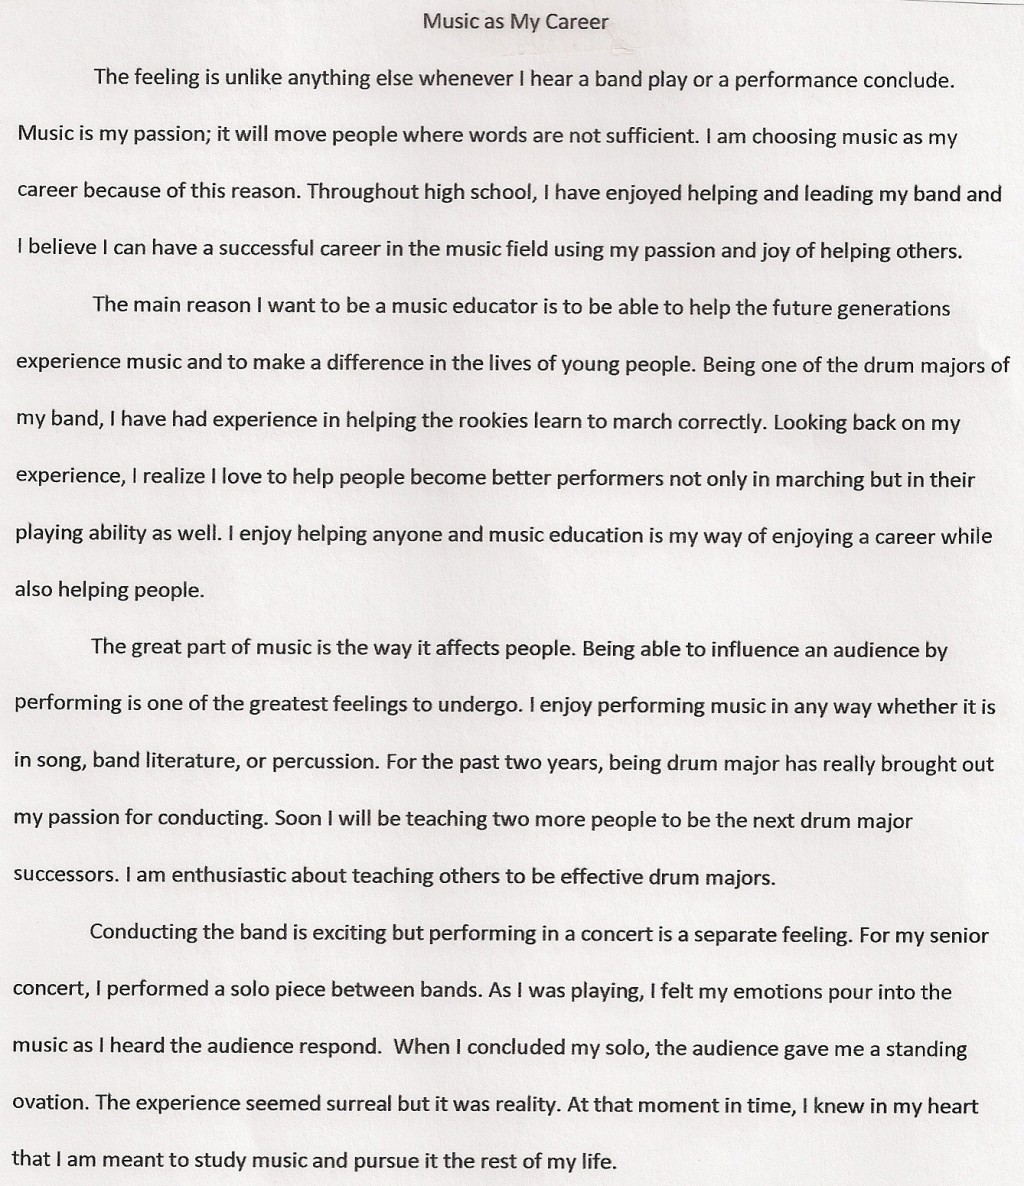 020 Graduation Essay Example Excellent Sample High School Essays For 8th Grade Large